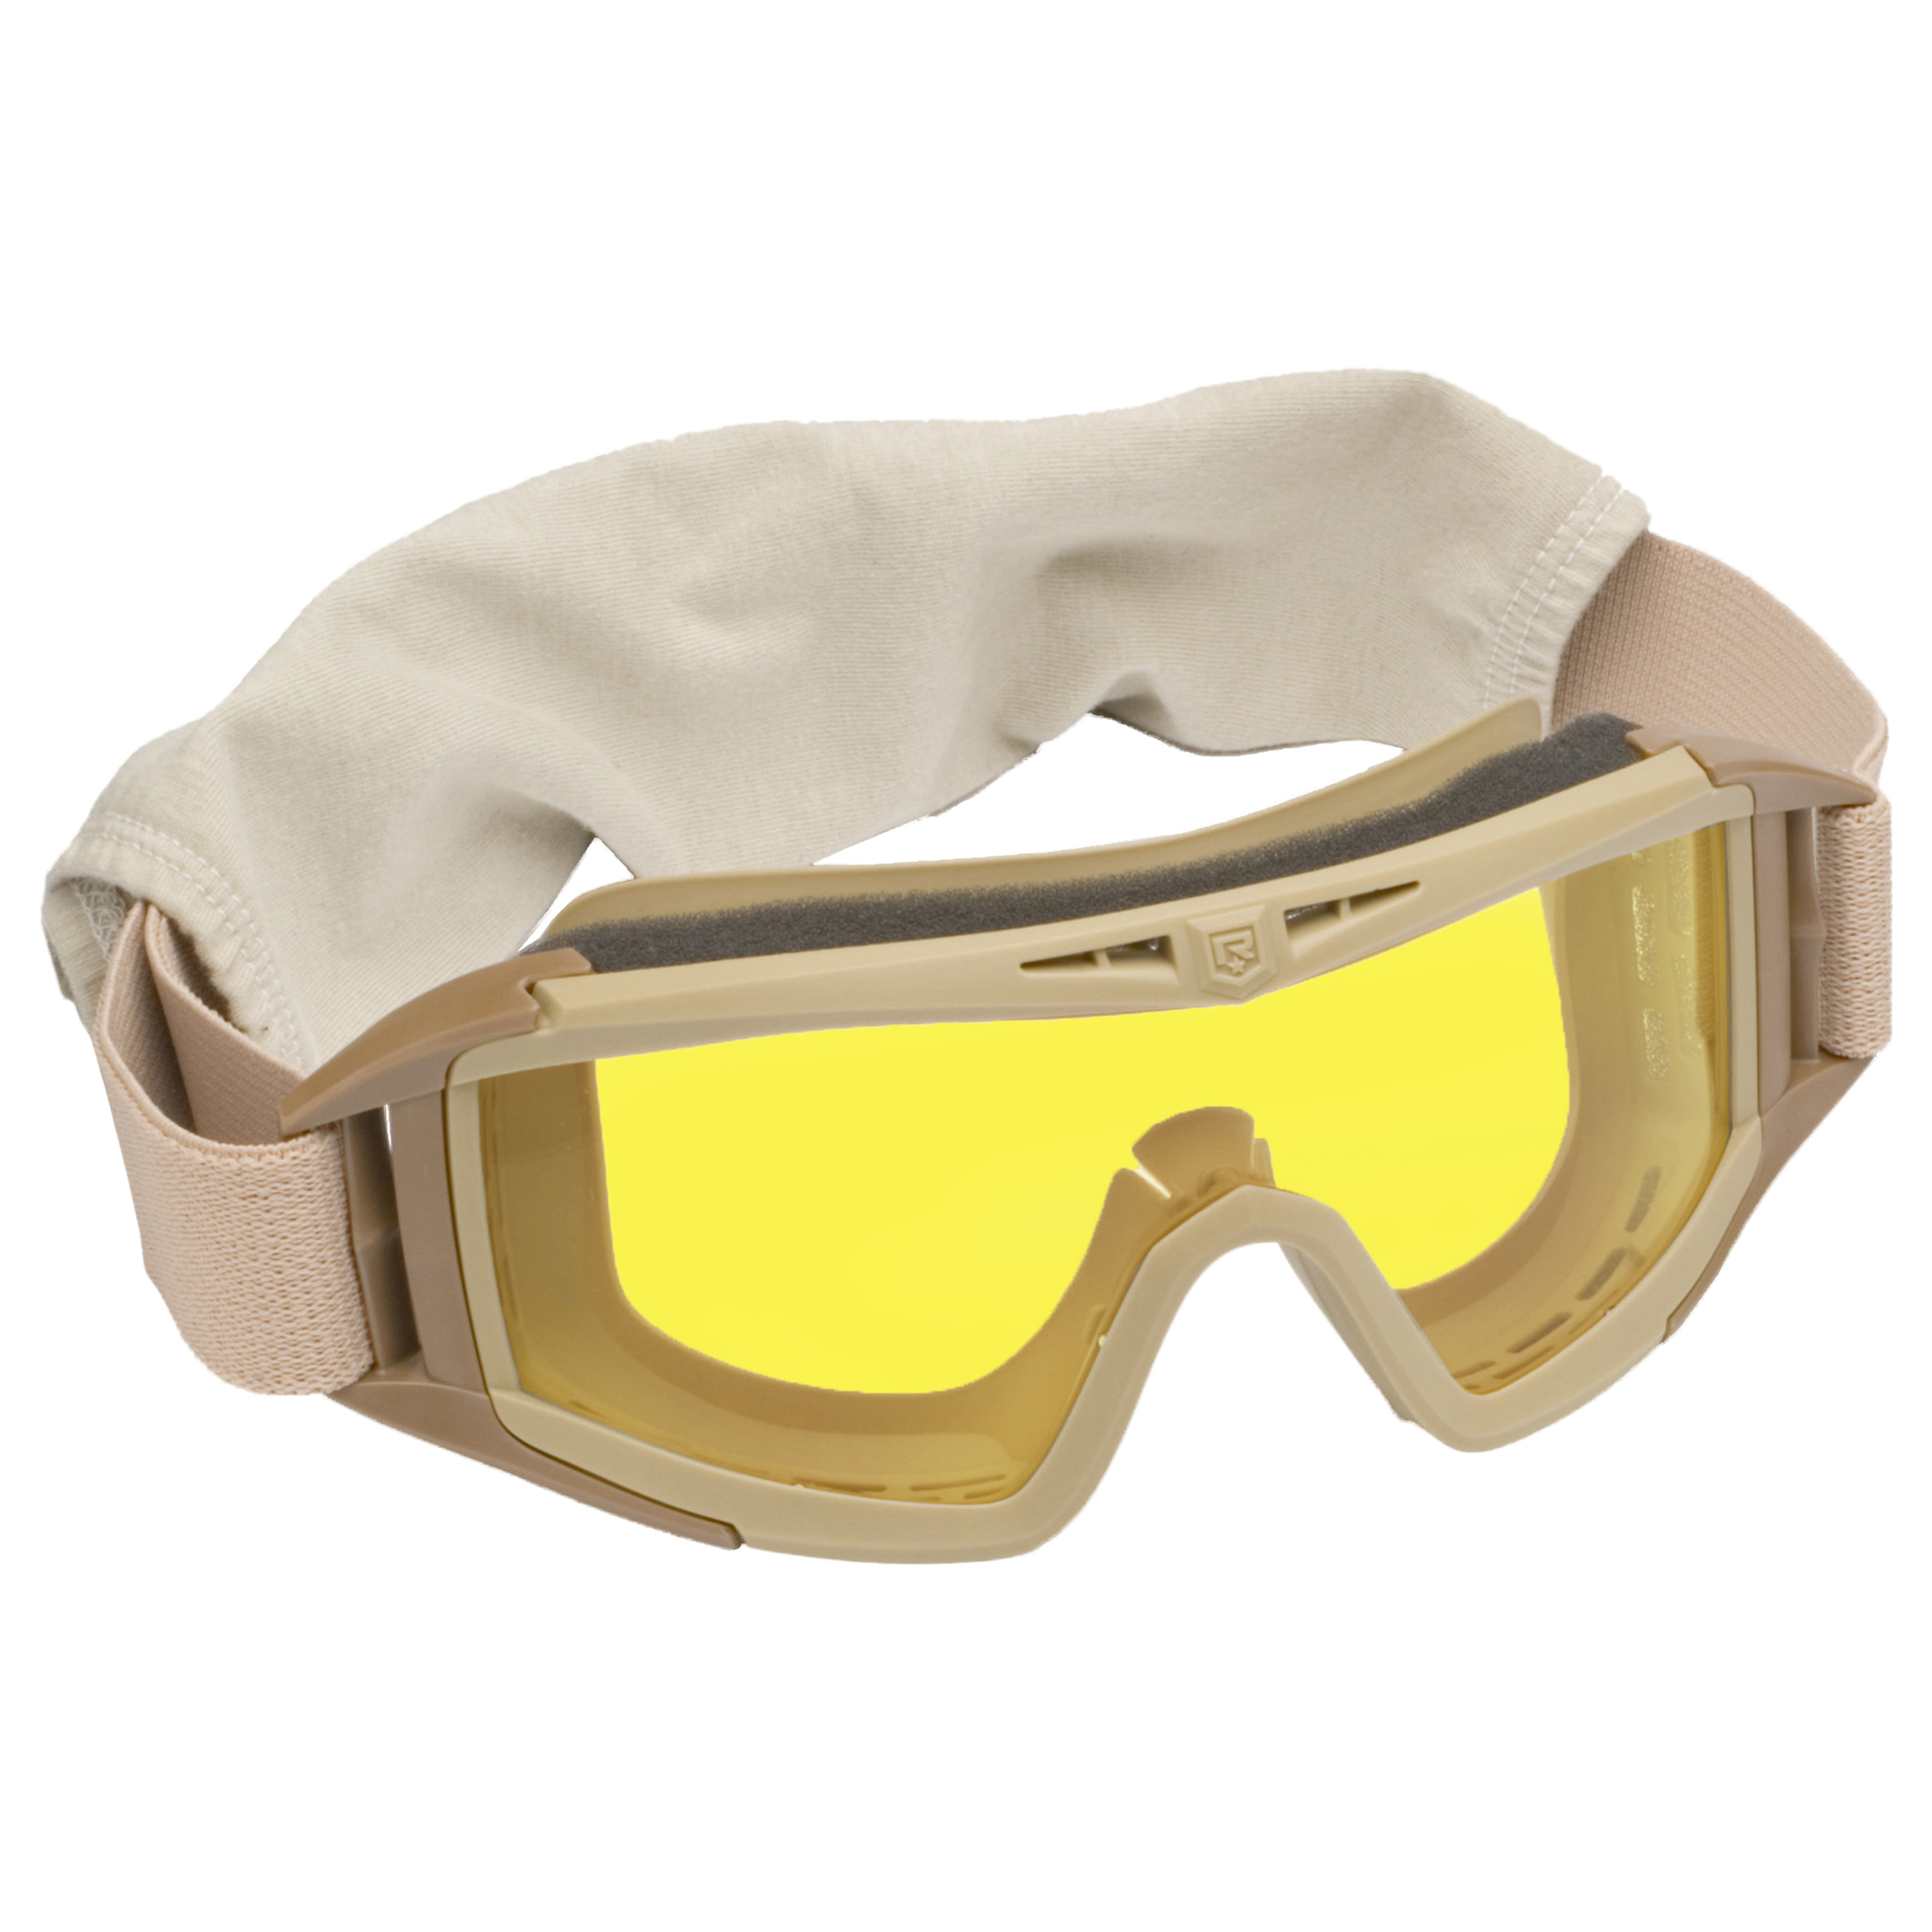 Revision Desert Locust Basic Goggles tan/yellow lens